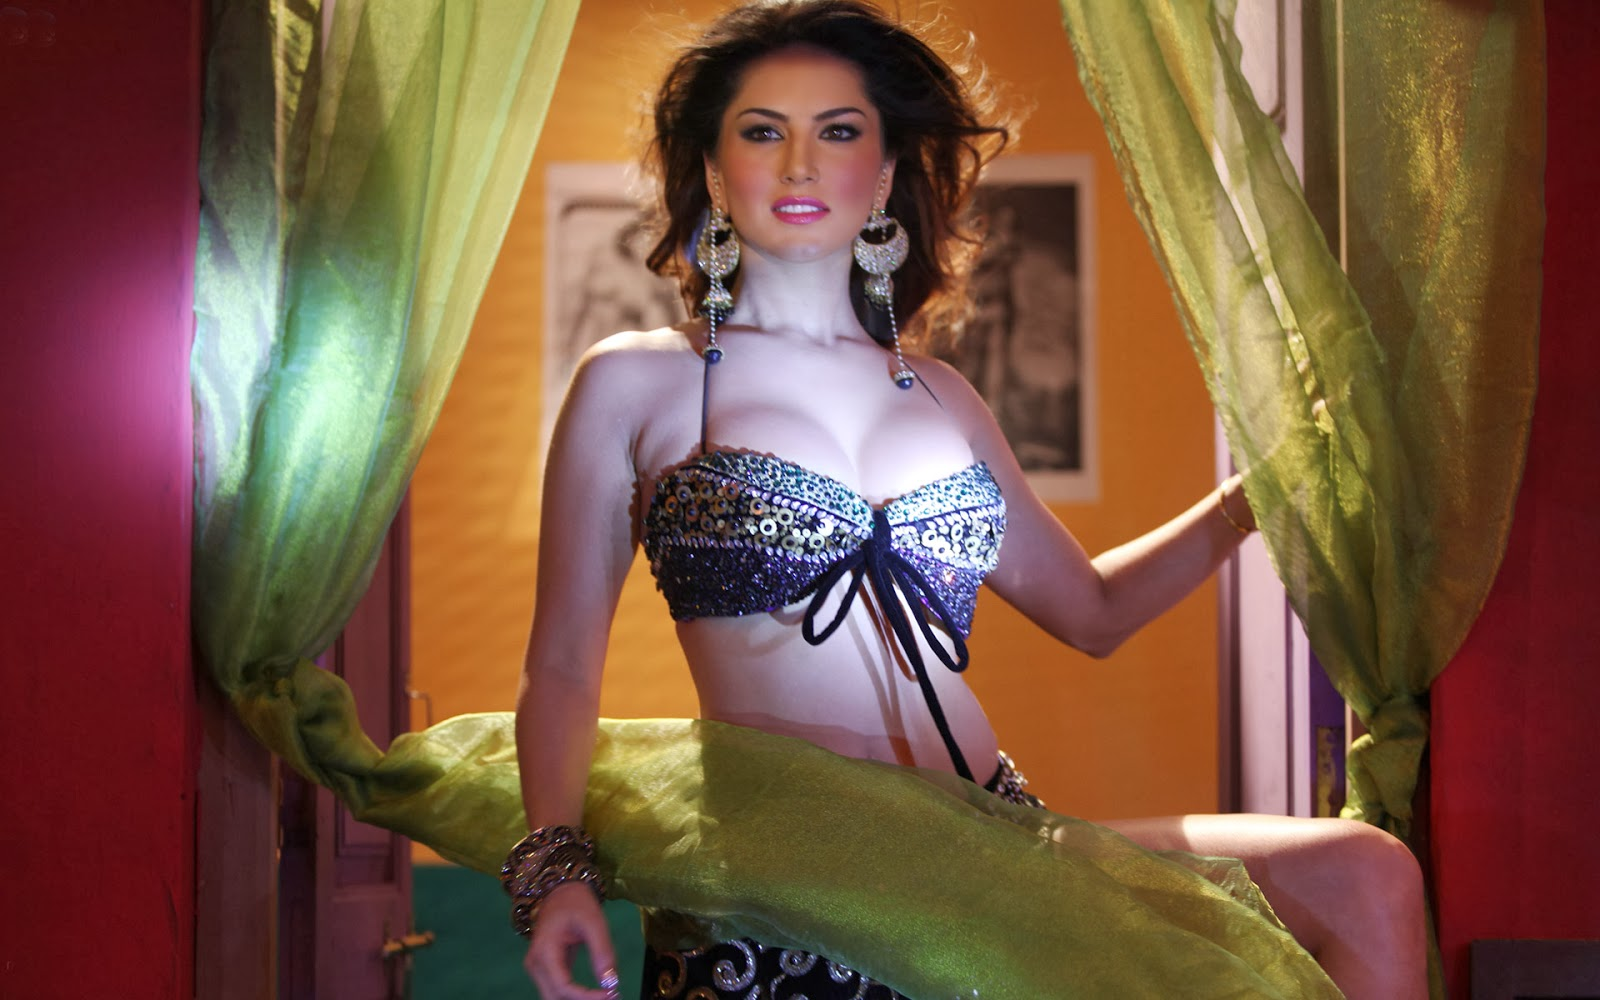 sunny leone in shoot out wadala dance hd wallpapers images